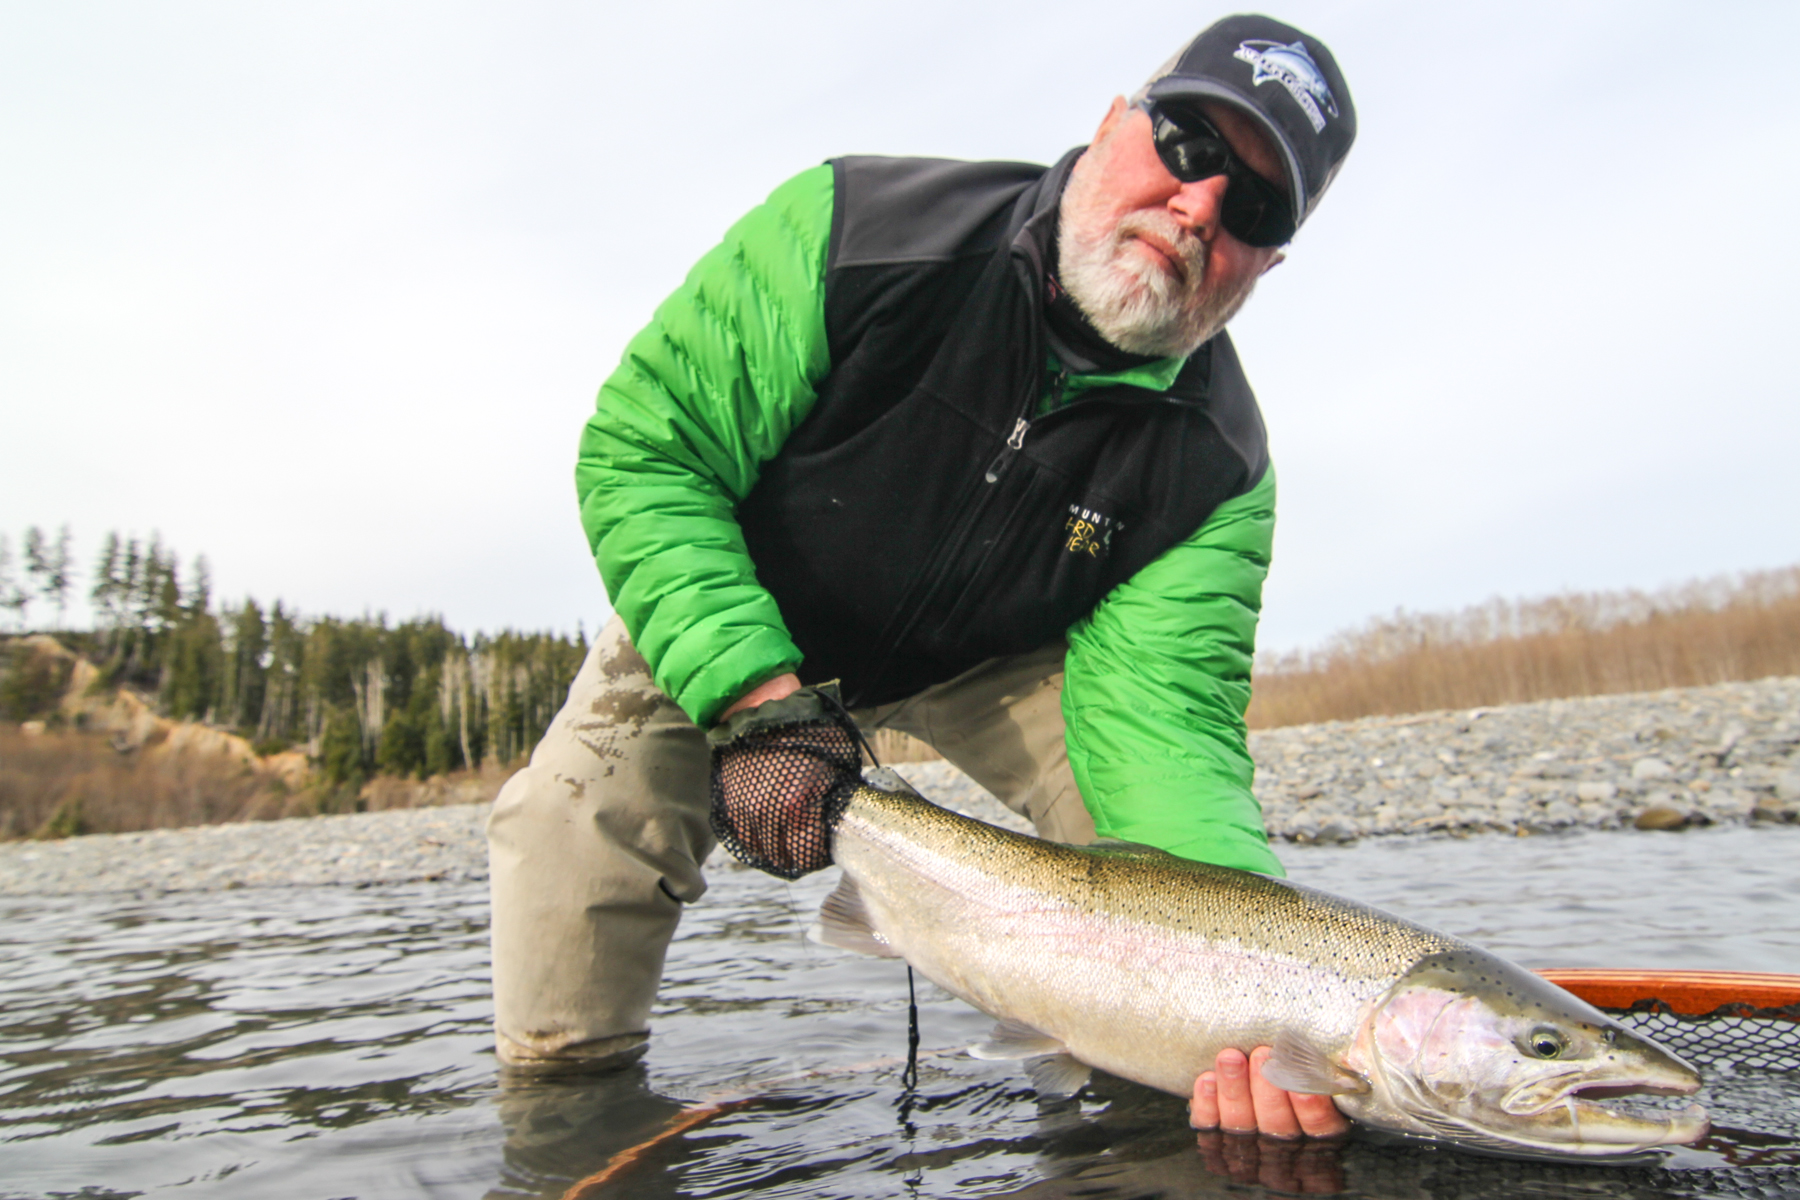 Forks washington steelhead fly fishing gallery for Fishing in seattle washington